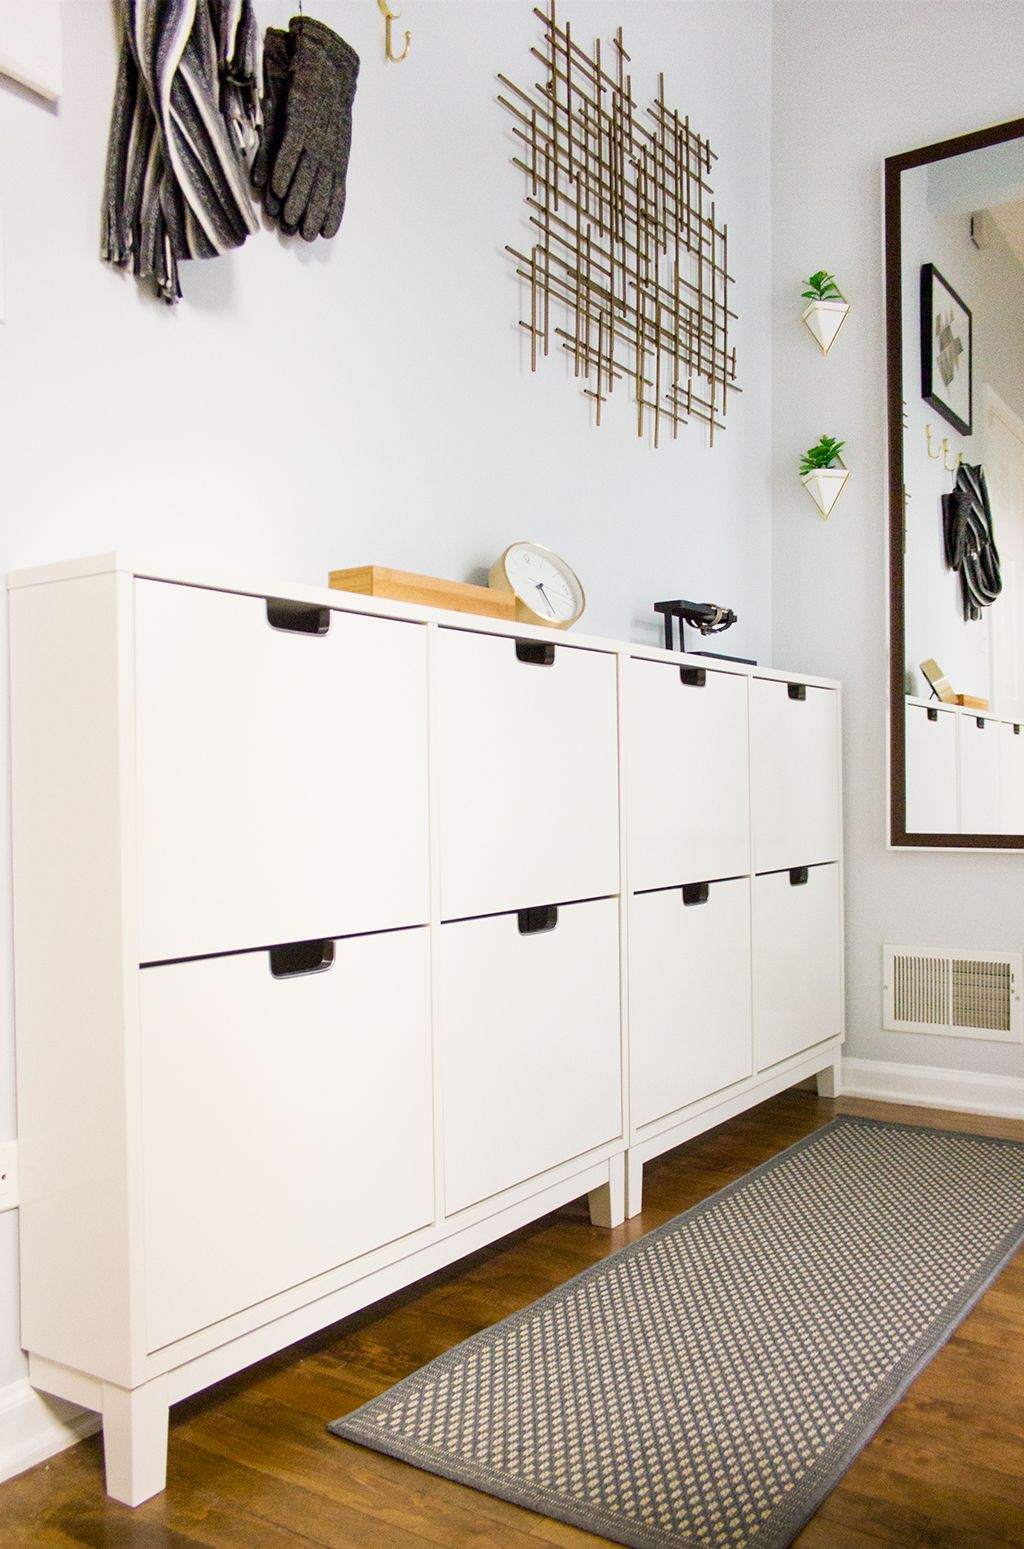 Hallway furniture for small space  Before and After A Dead Entryway Gets a Functional Facelift  Empty